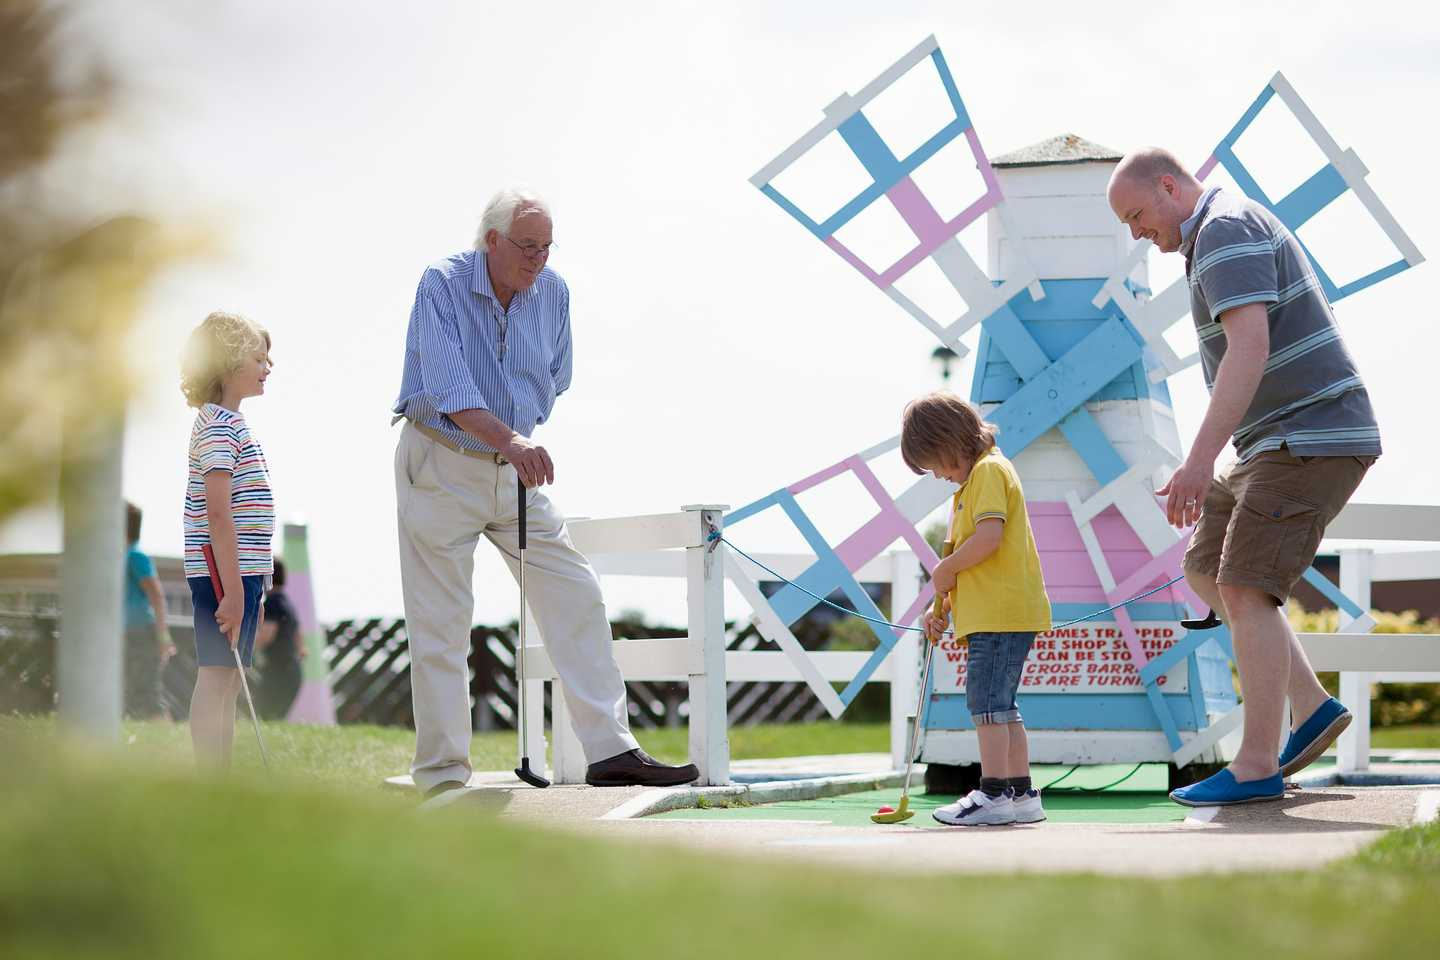 A family playing on the crazy golf course